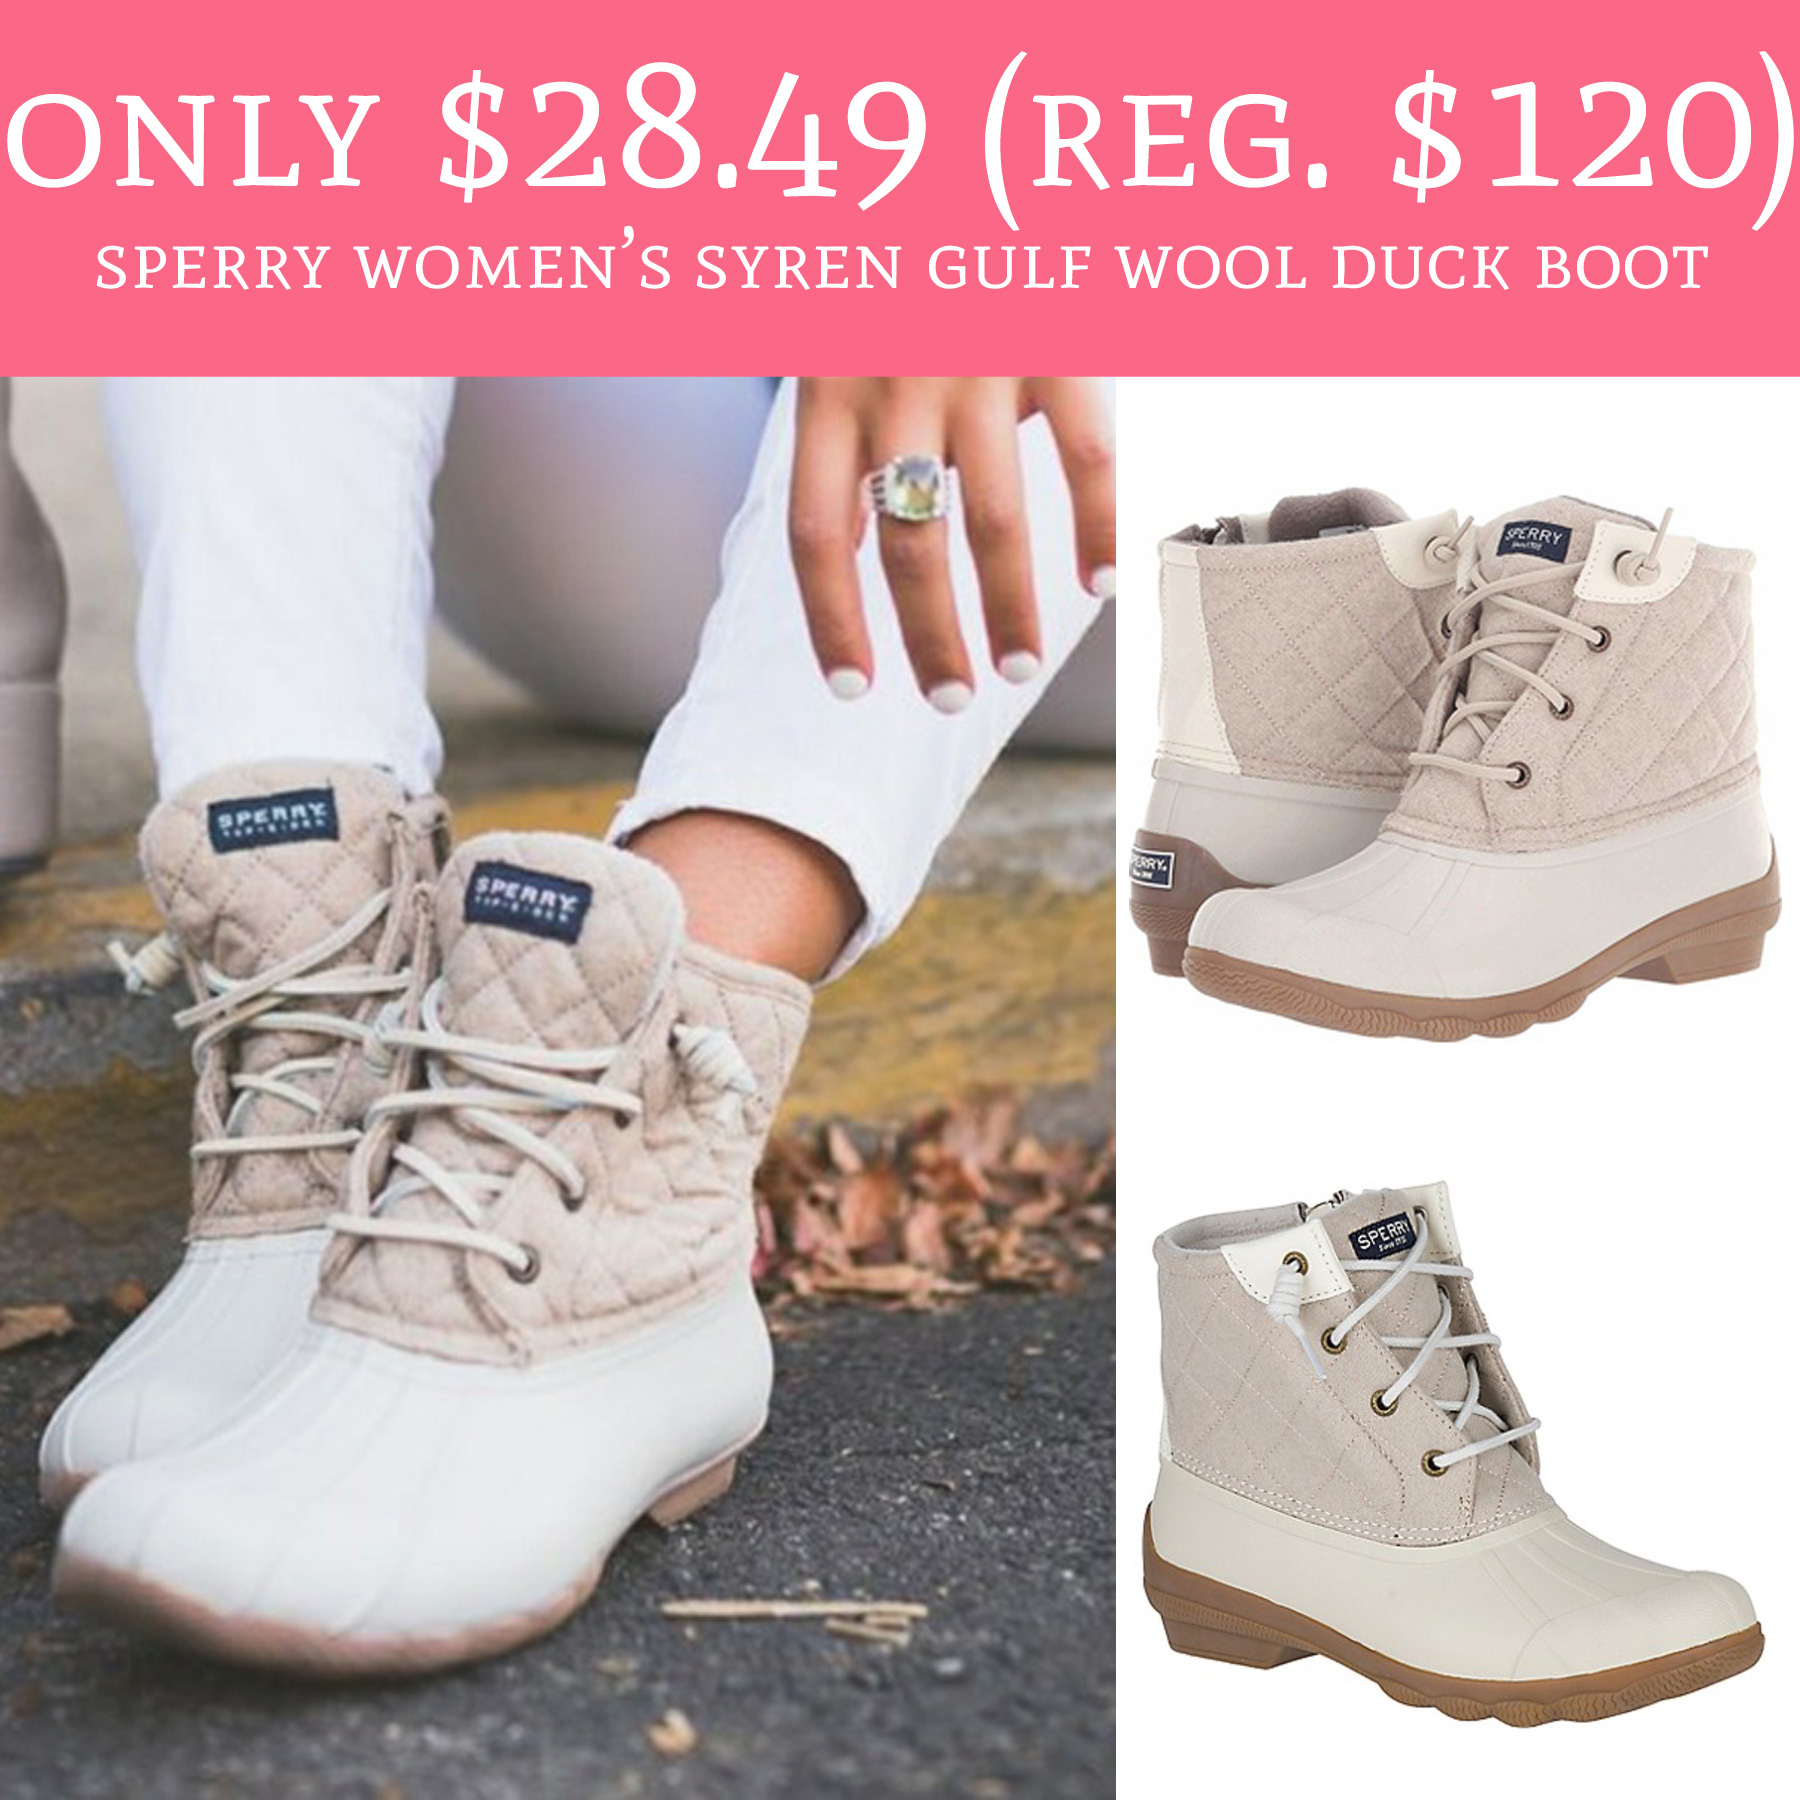 fd8068ce4 These will sell out!! Hurry over to Sperry.com where you can score the Sperry  Women's Syren Gulf Wool Duck Boot ...